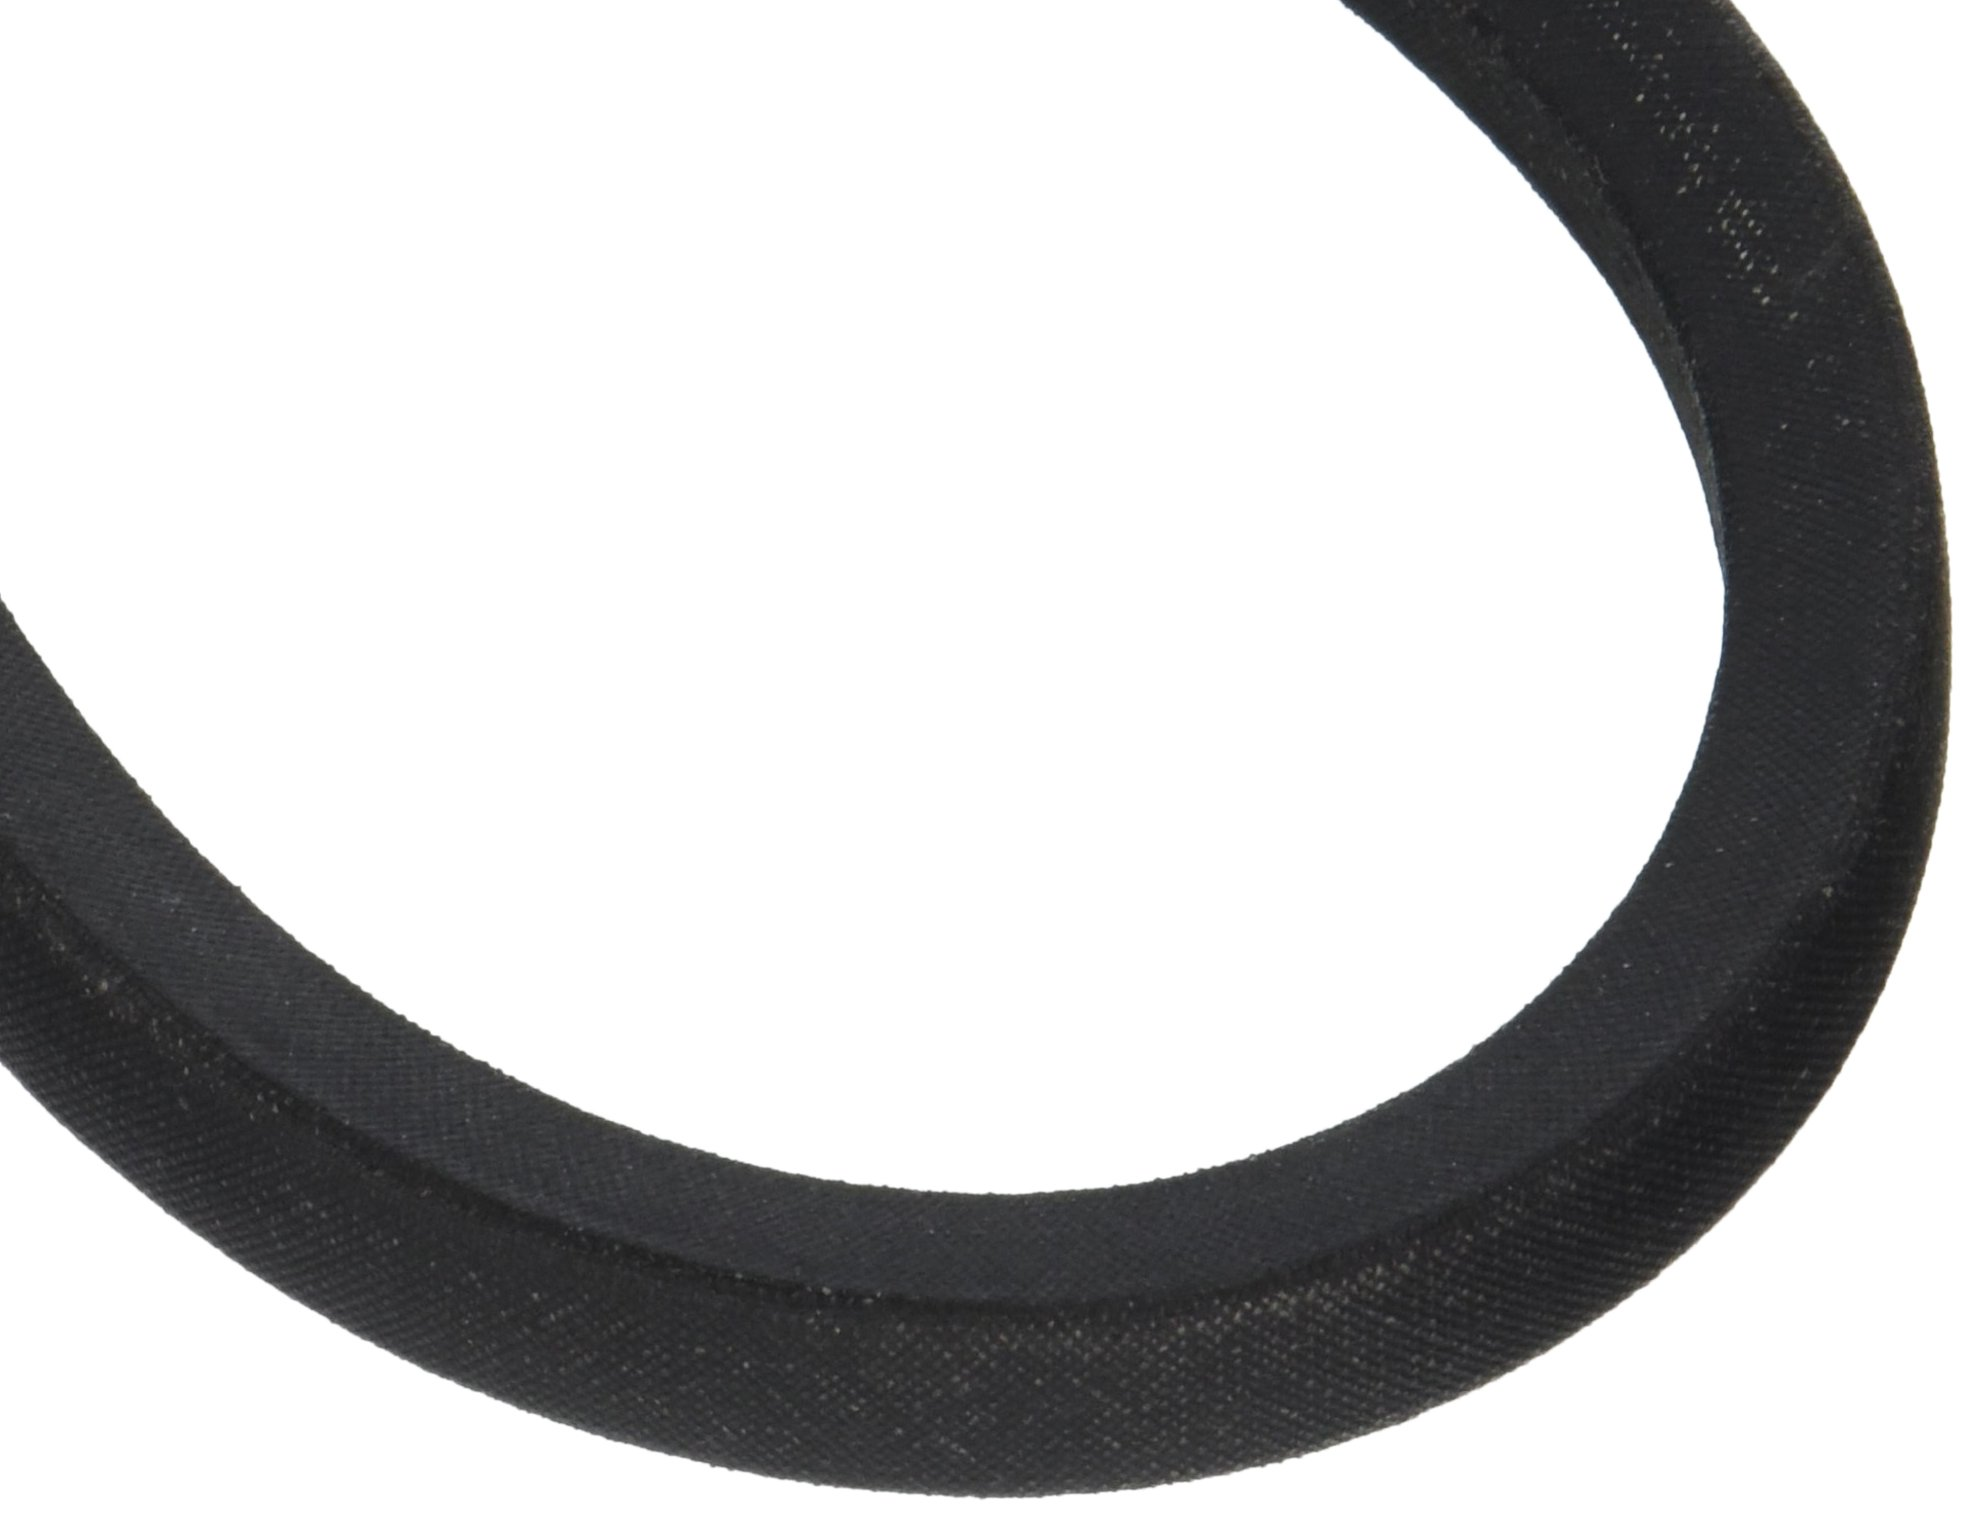 Stens 265-137 Belt Replaces Exmark 1-633173 111-1/4-Inch by-5/8-inch